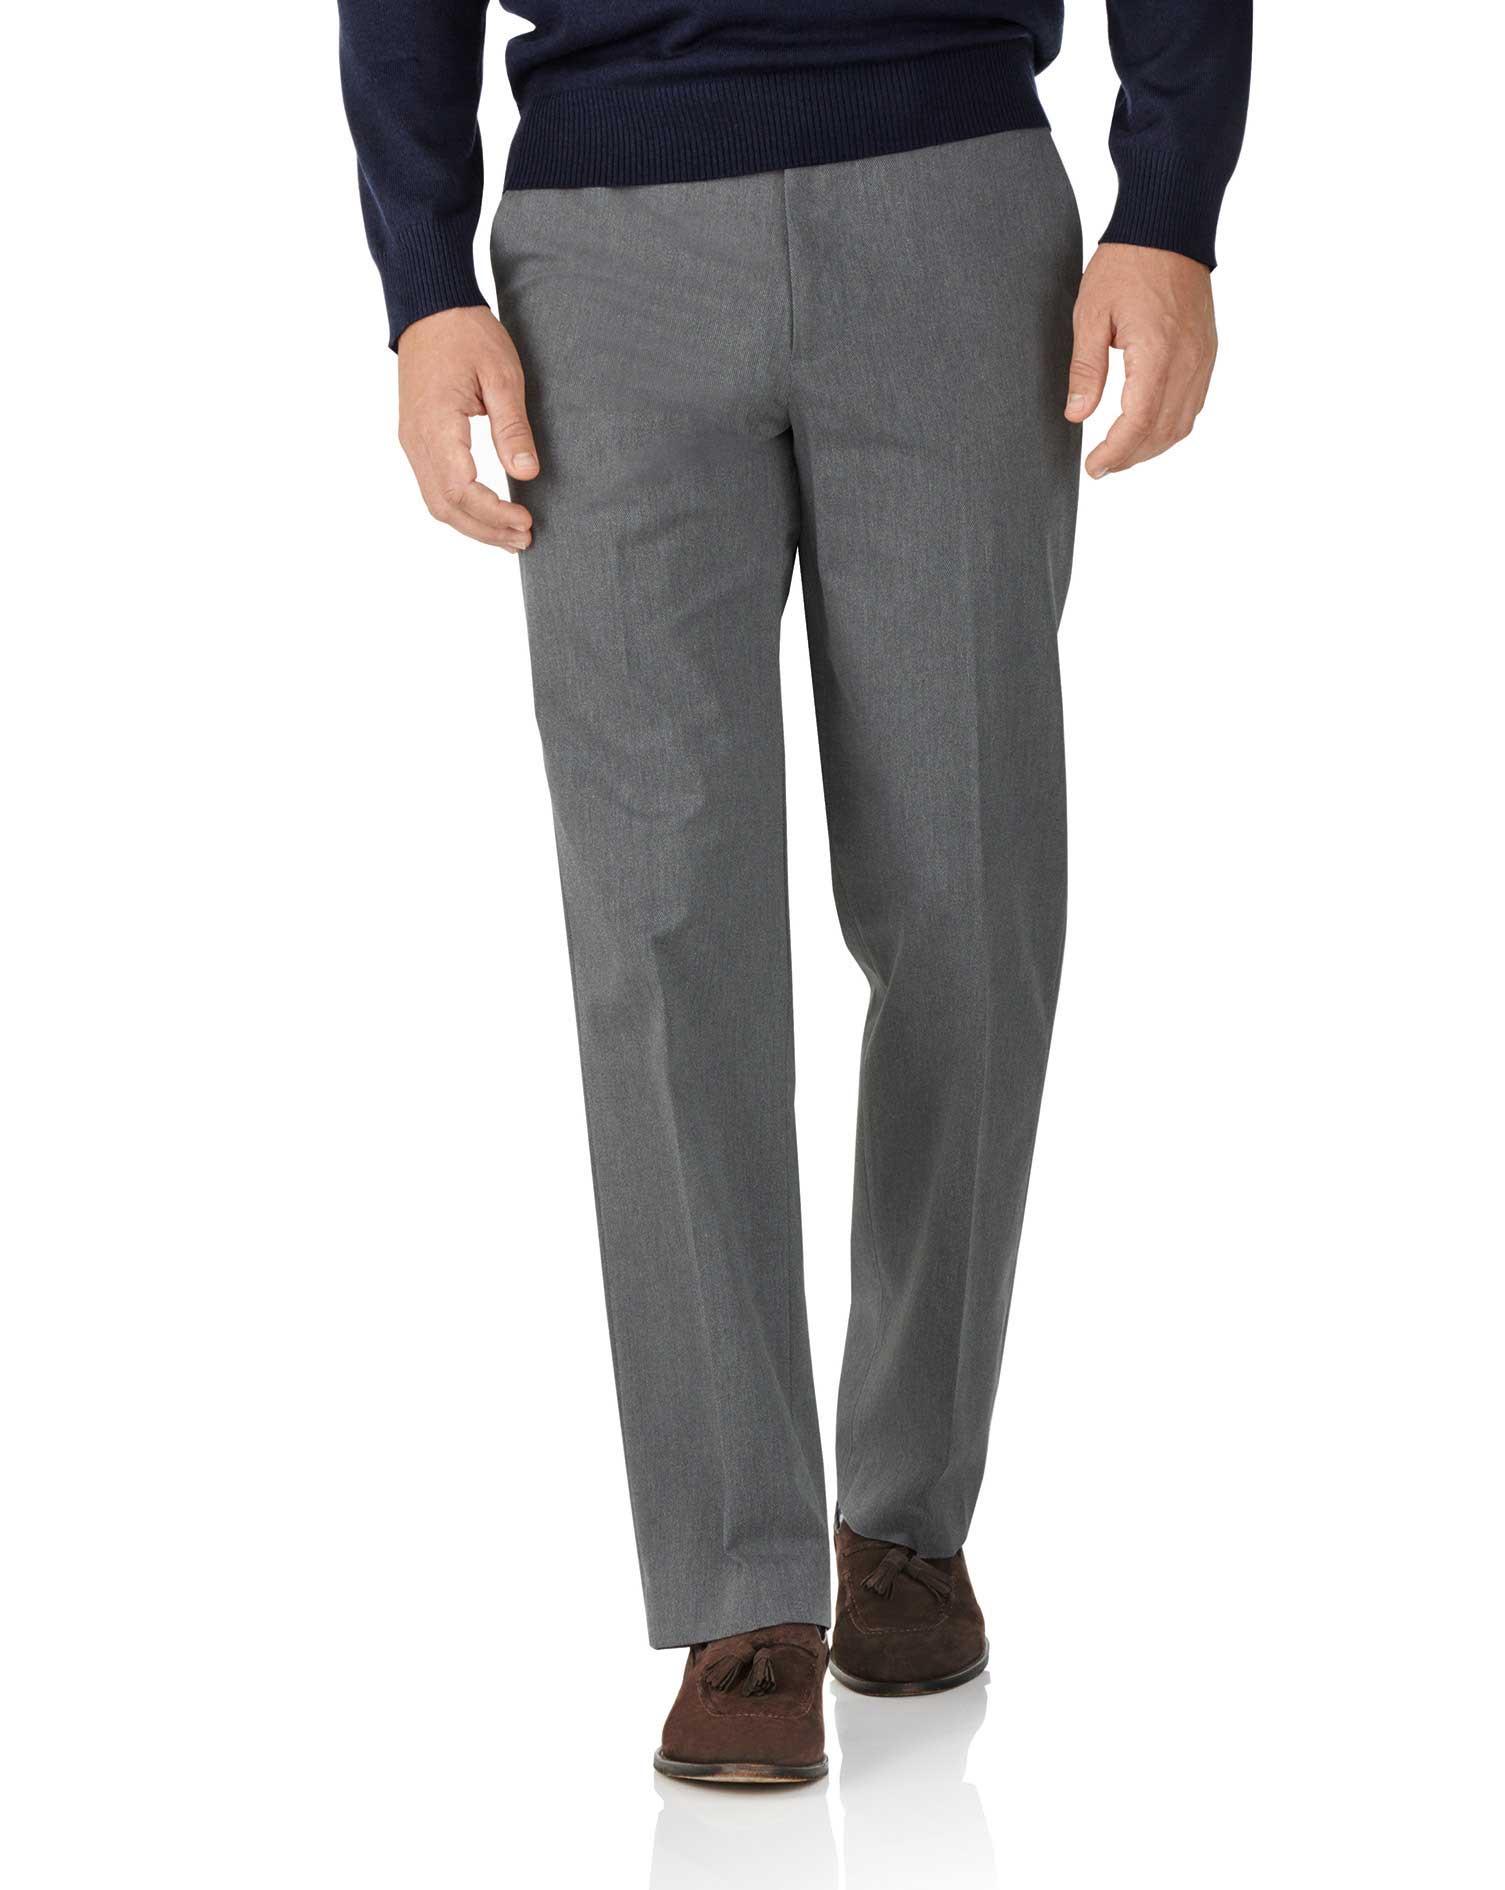 Light Grey Classic Fit Stretch Cavalry Twill Trousers Size W32 L34 by Charles Tyrwhitt